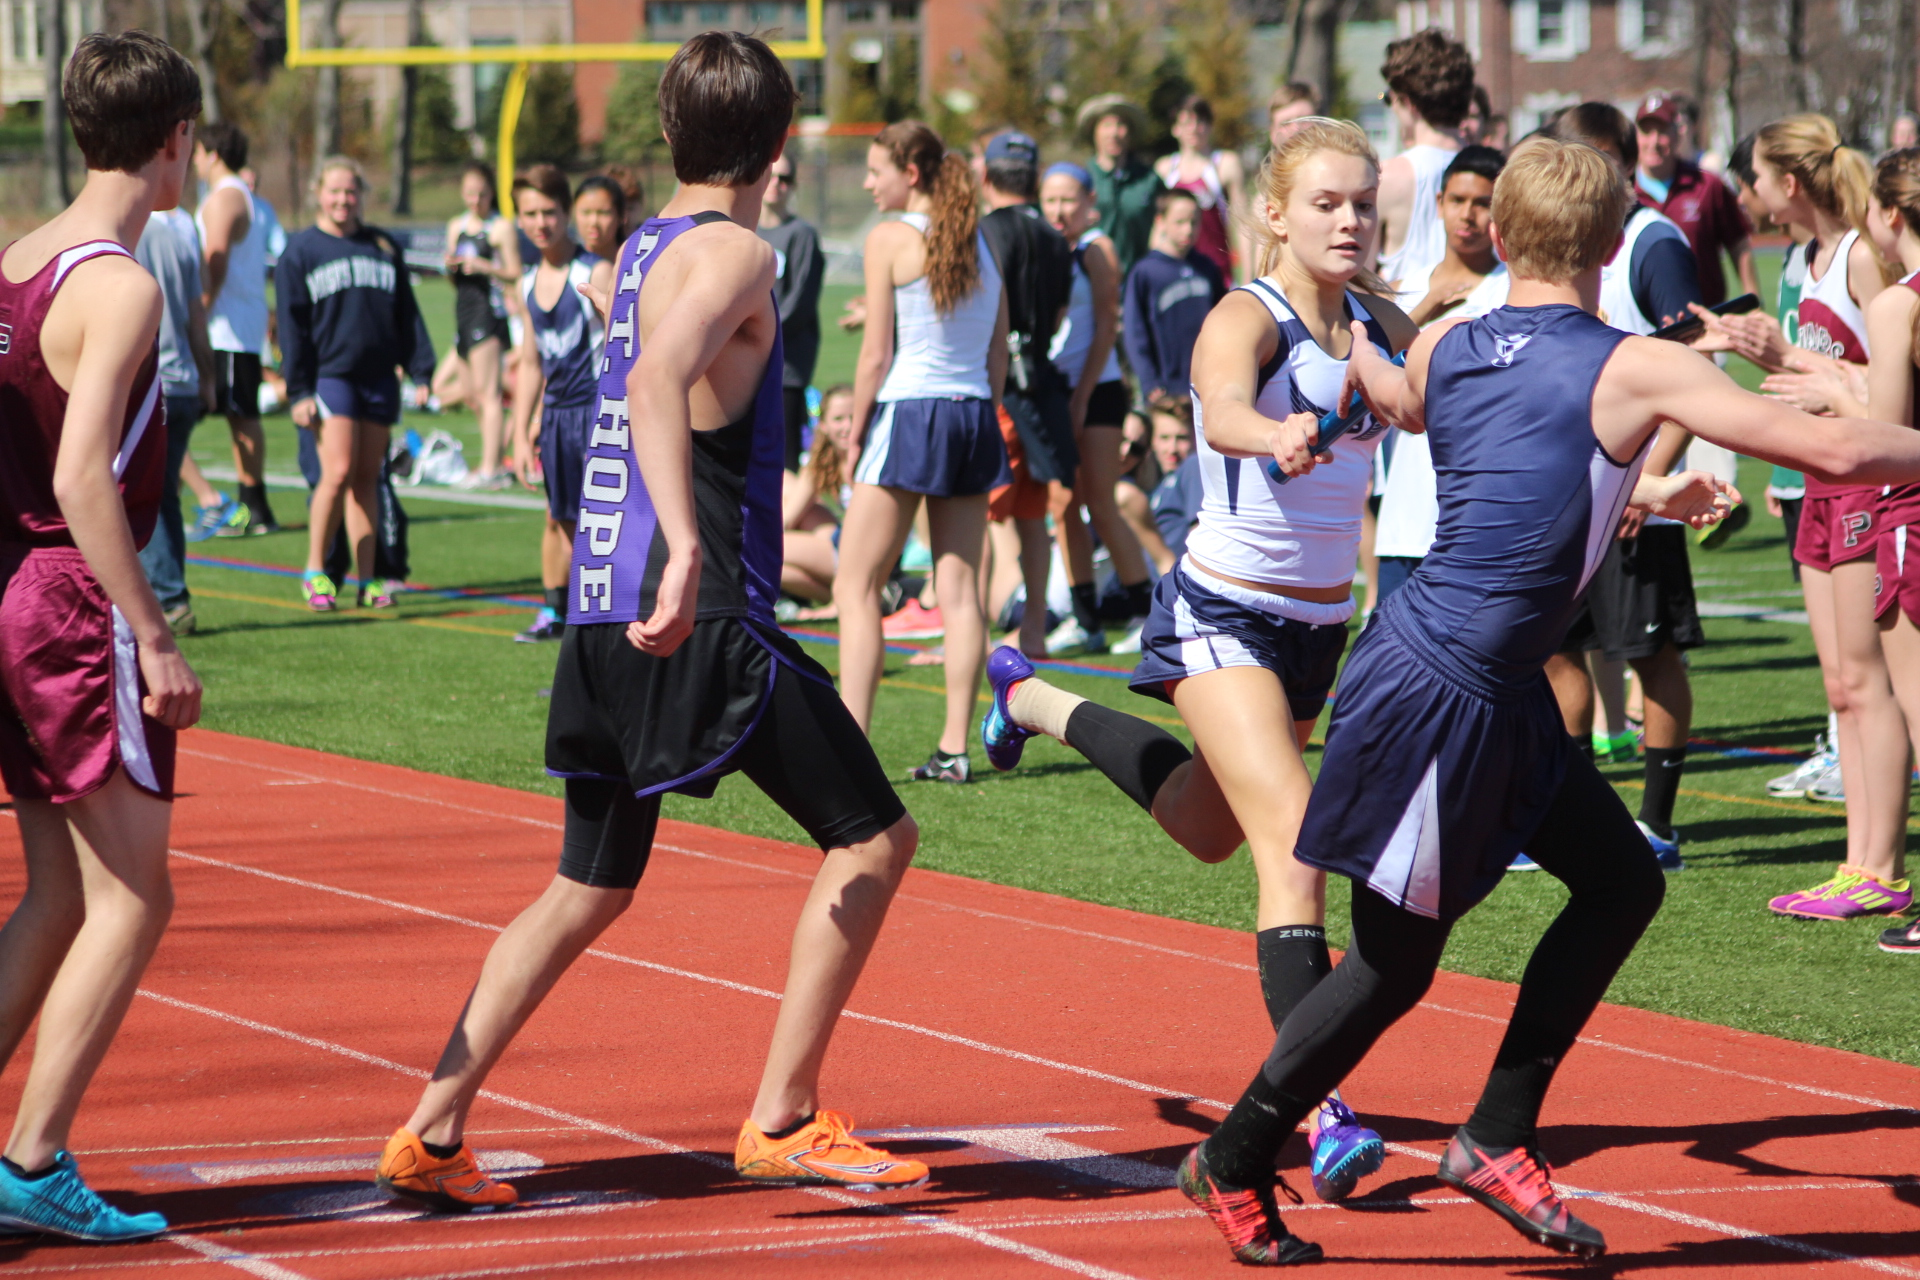 Sun shines brightly for inaugural Moses Brown Co-Ed Relays